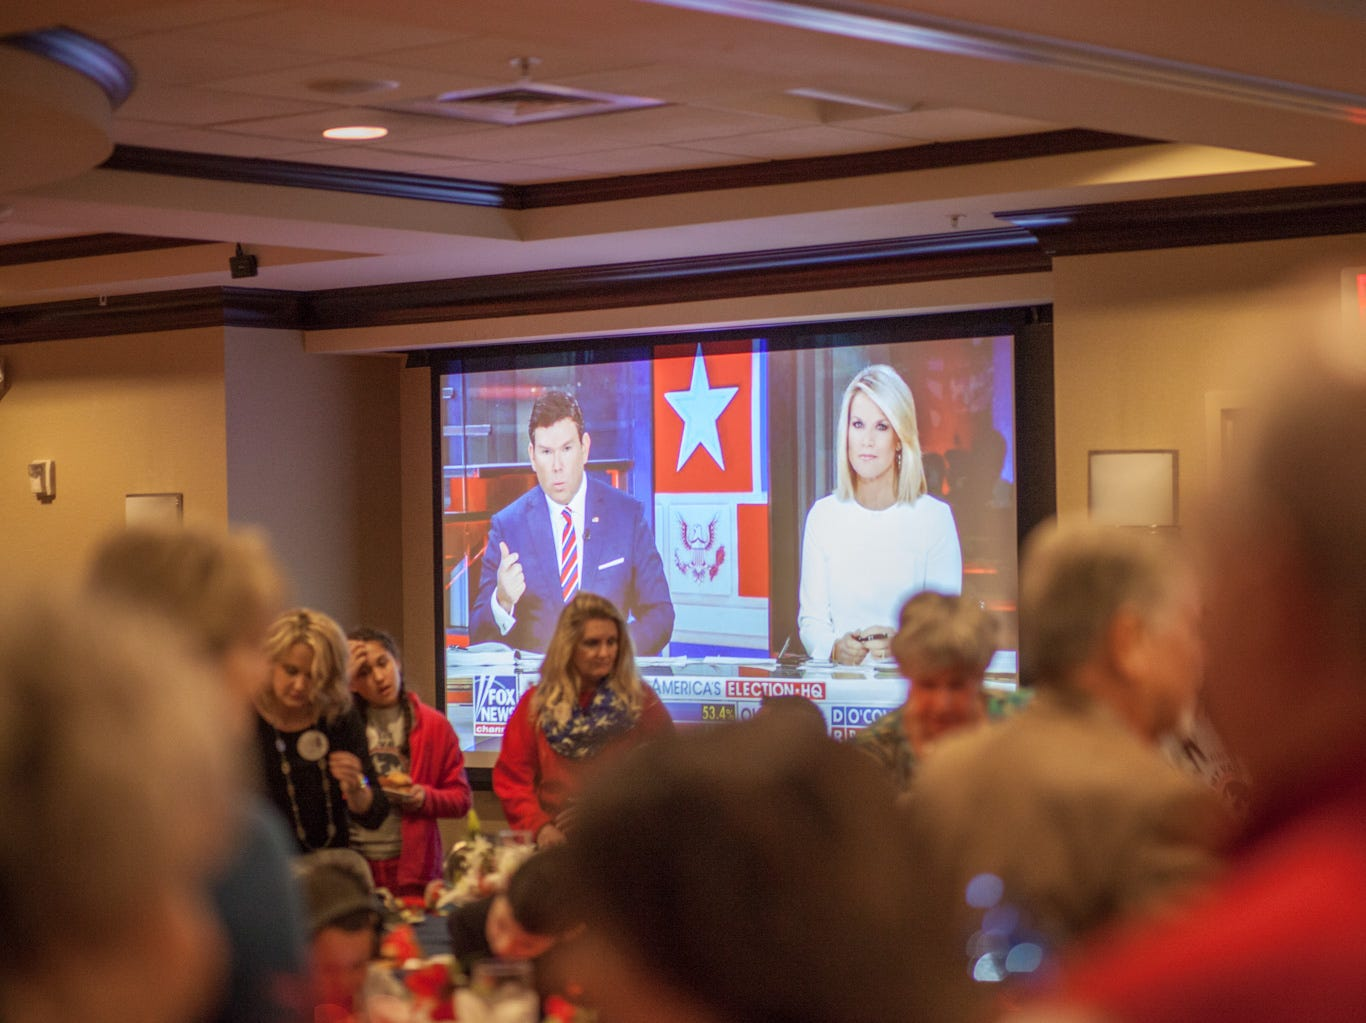 The Montgomery County Republican Party hosted their watch party on Tuesday at the Hilton Garden Inn on Alfred Thun road.